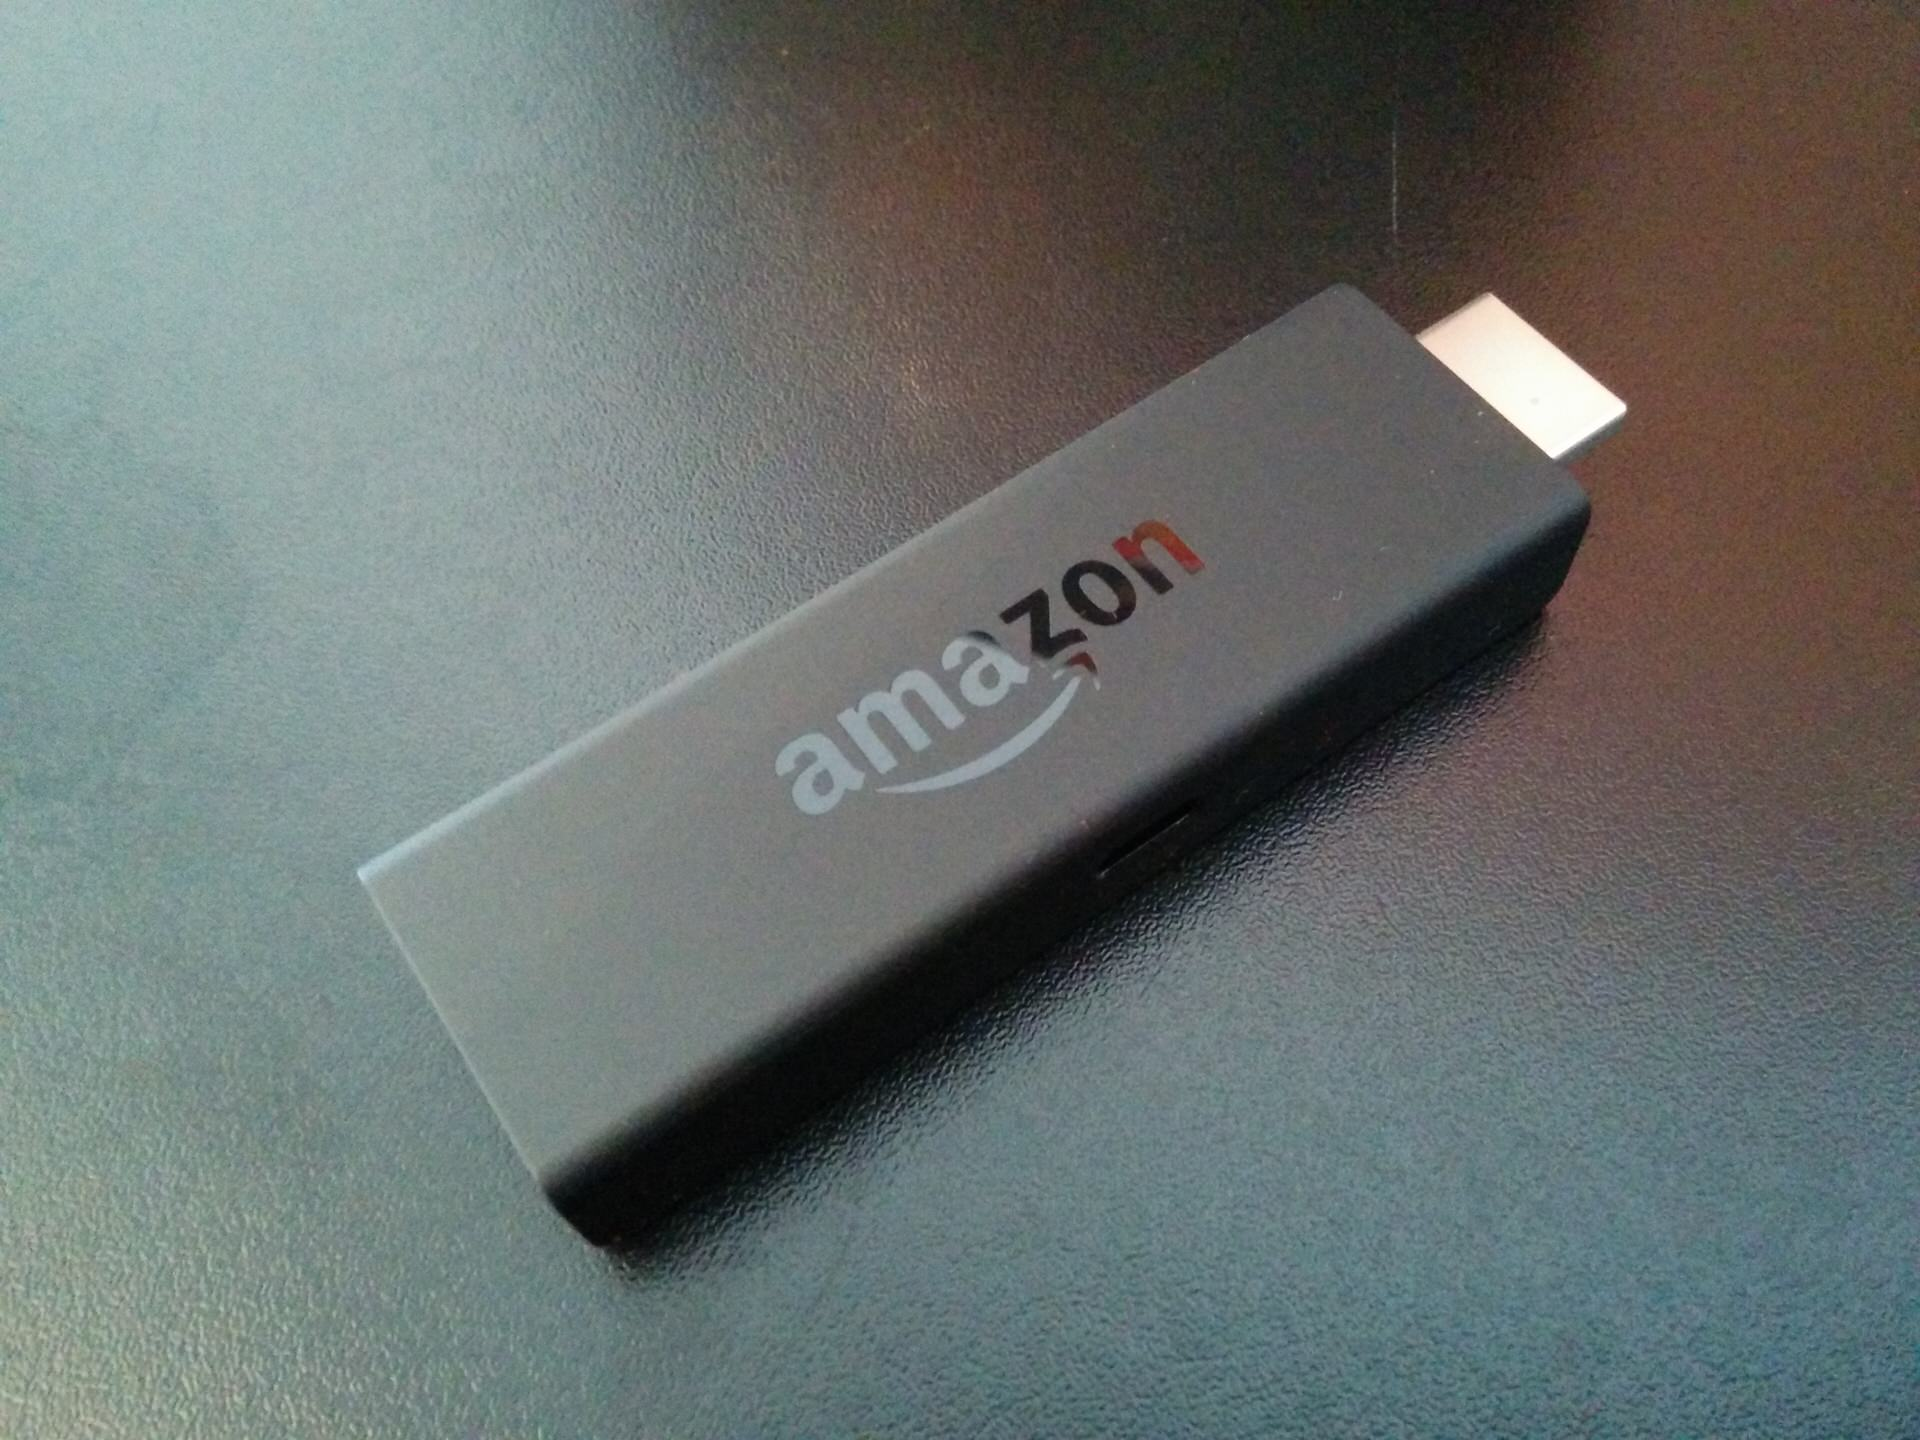 amazon fire tv stick stick.jpg #90763B 1920 1440